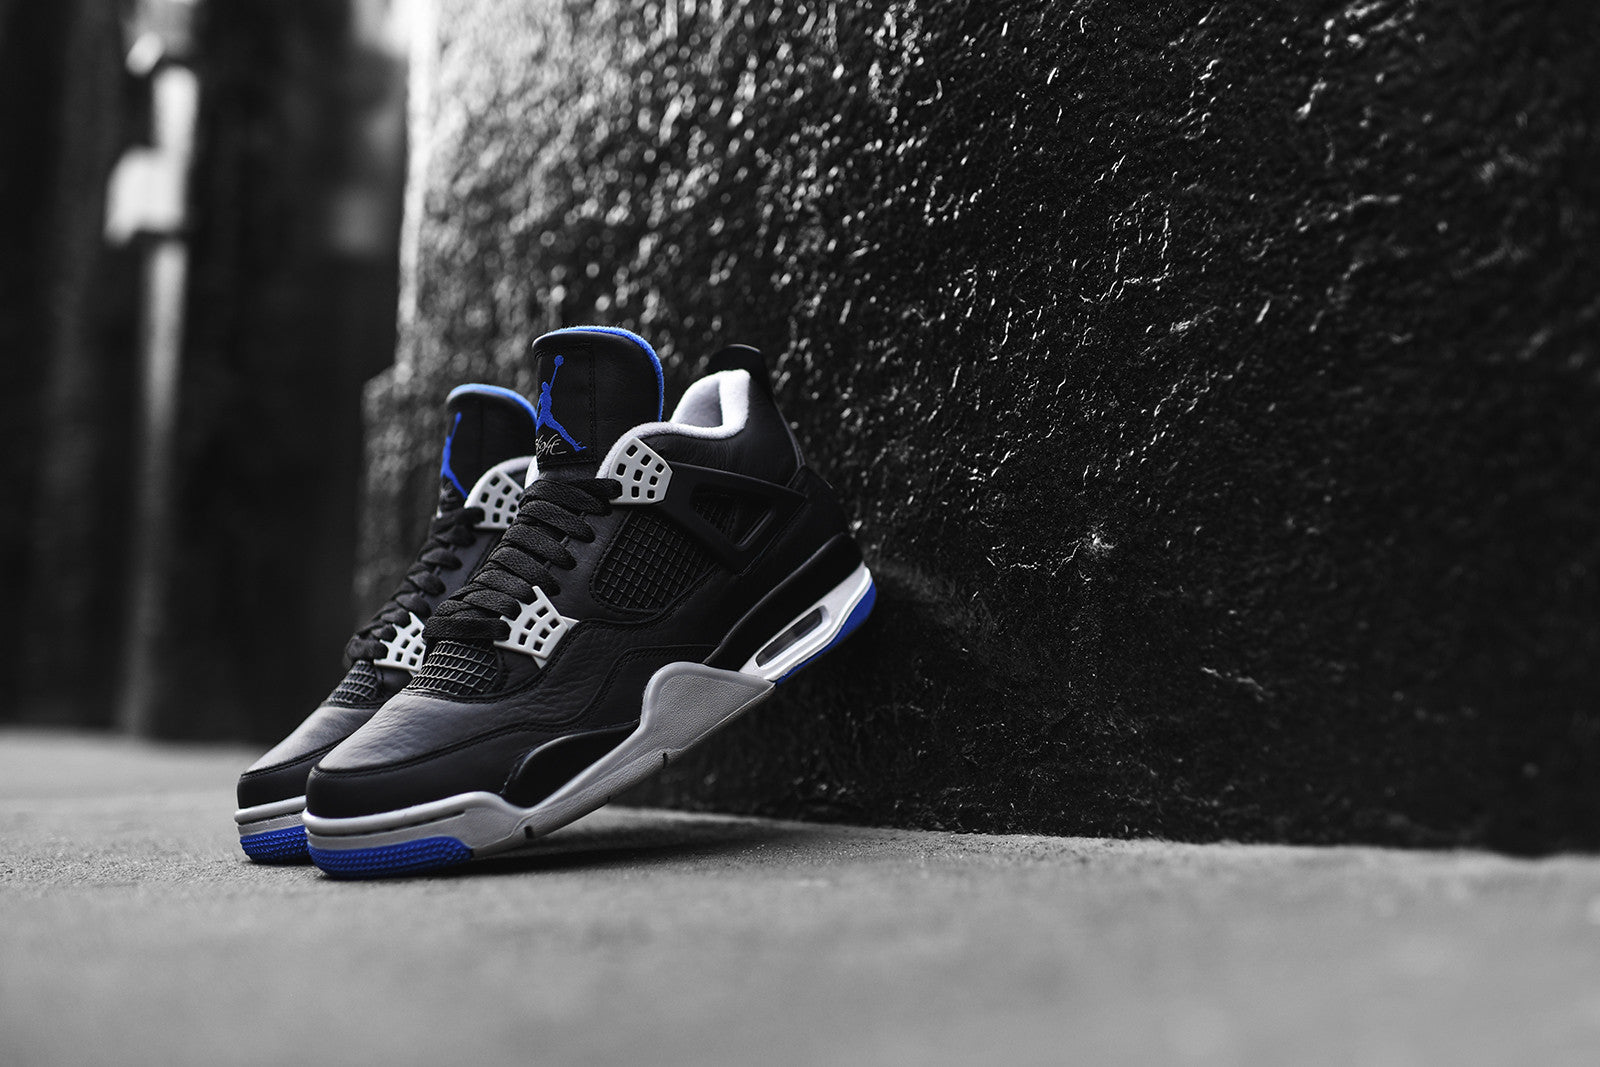 dab3b2c1baadca Nike Air Jordan 4 Retro - Alternate Motorsport. June 17